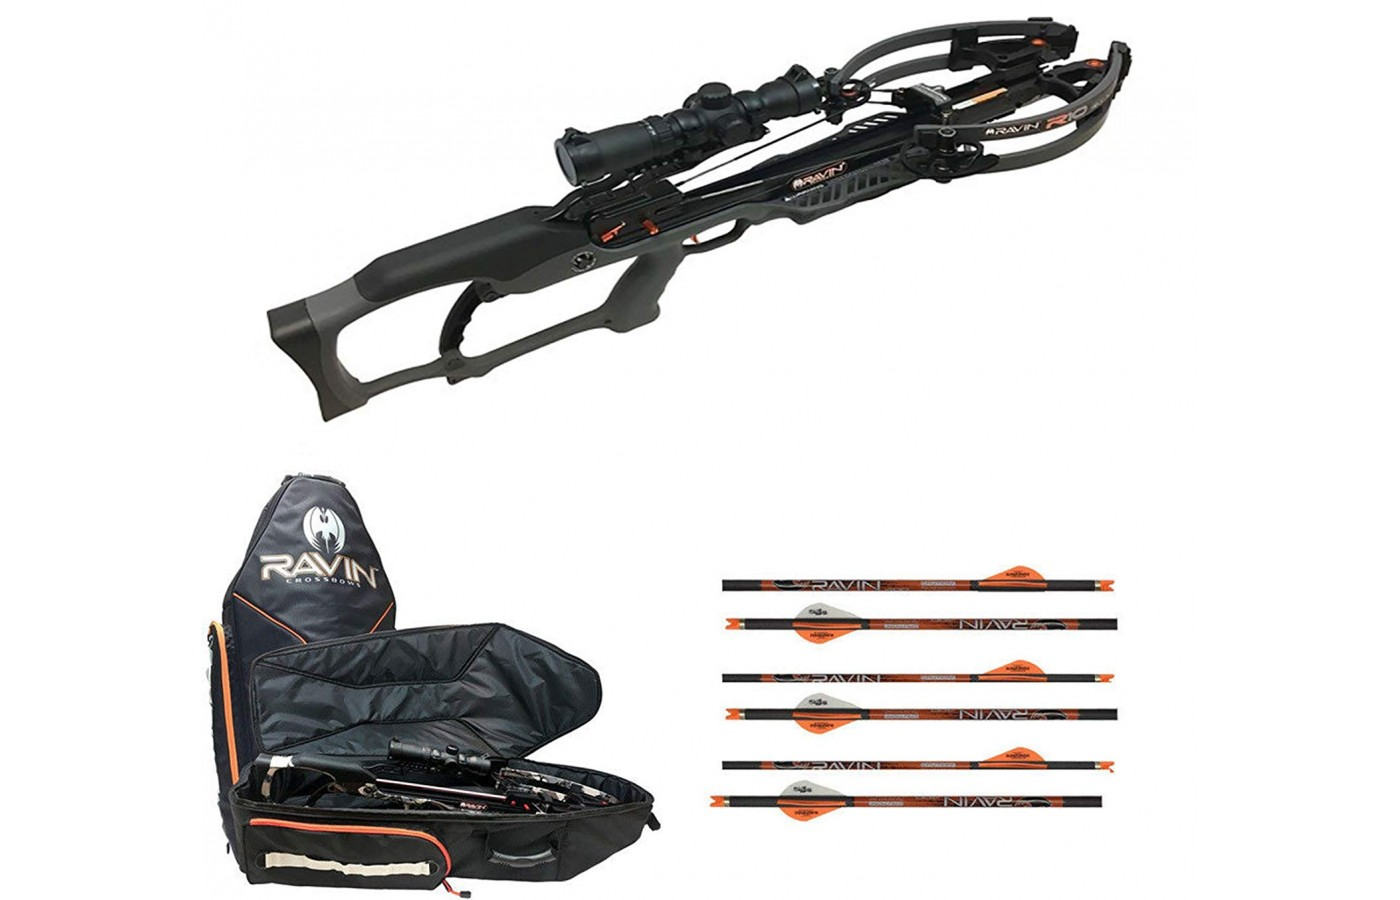 The Ravin R10 is often sold as a package deal with a soft case and six arrows.